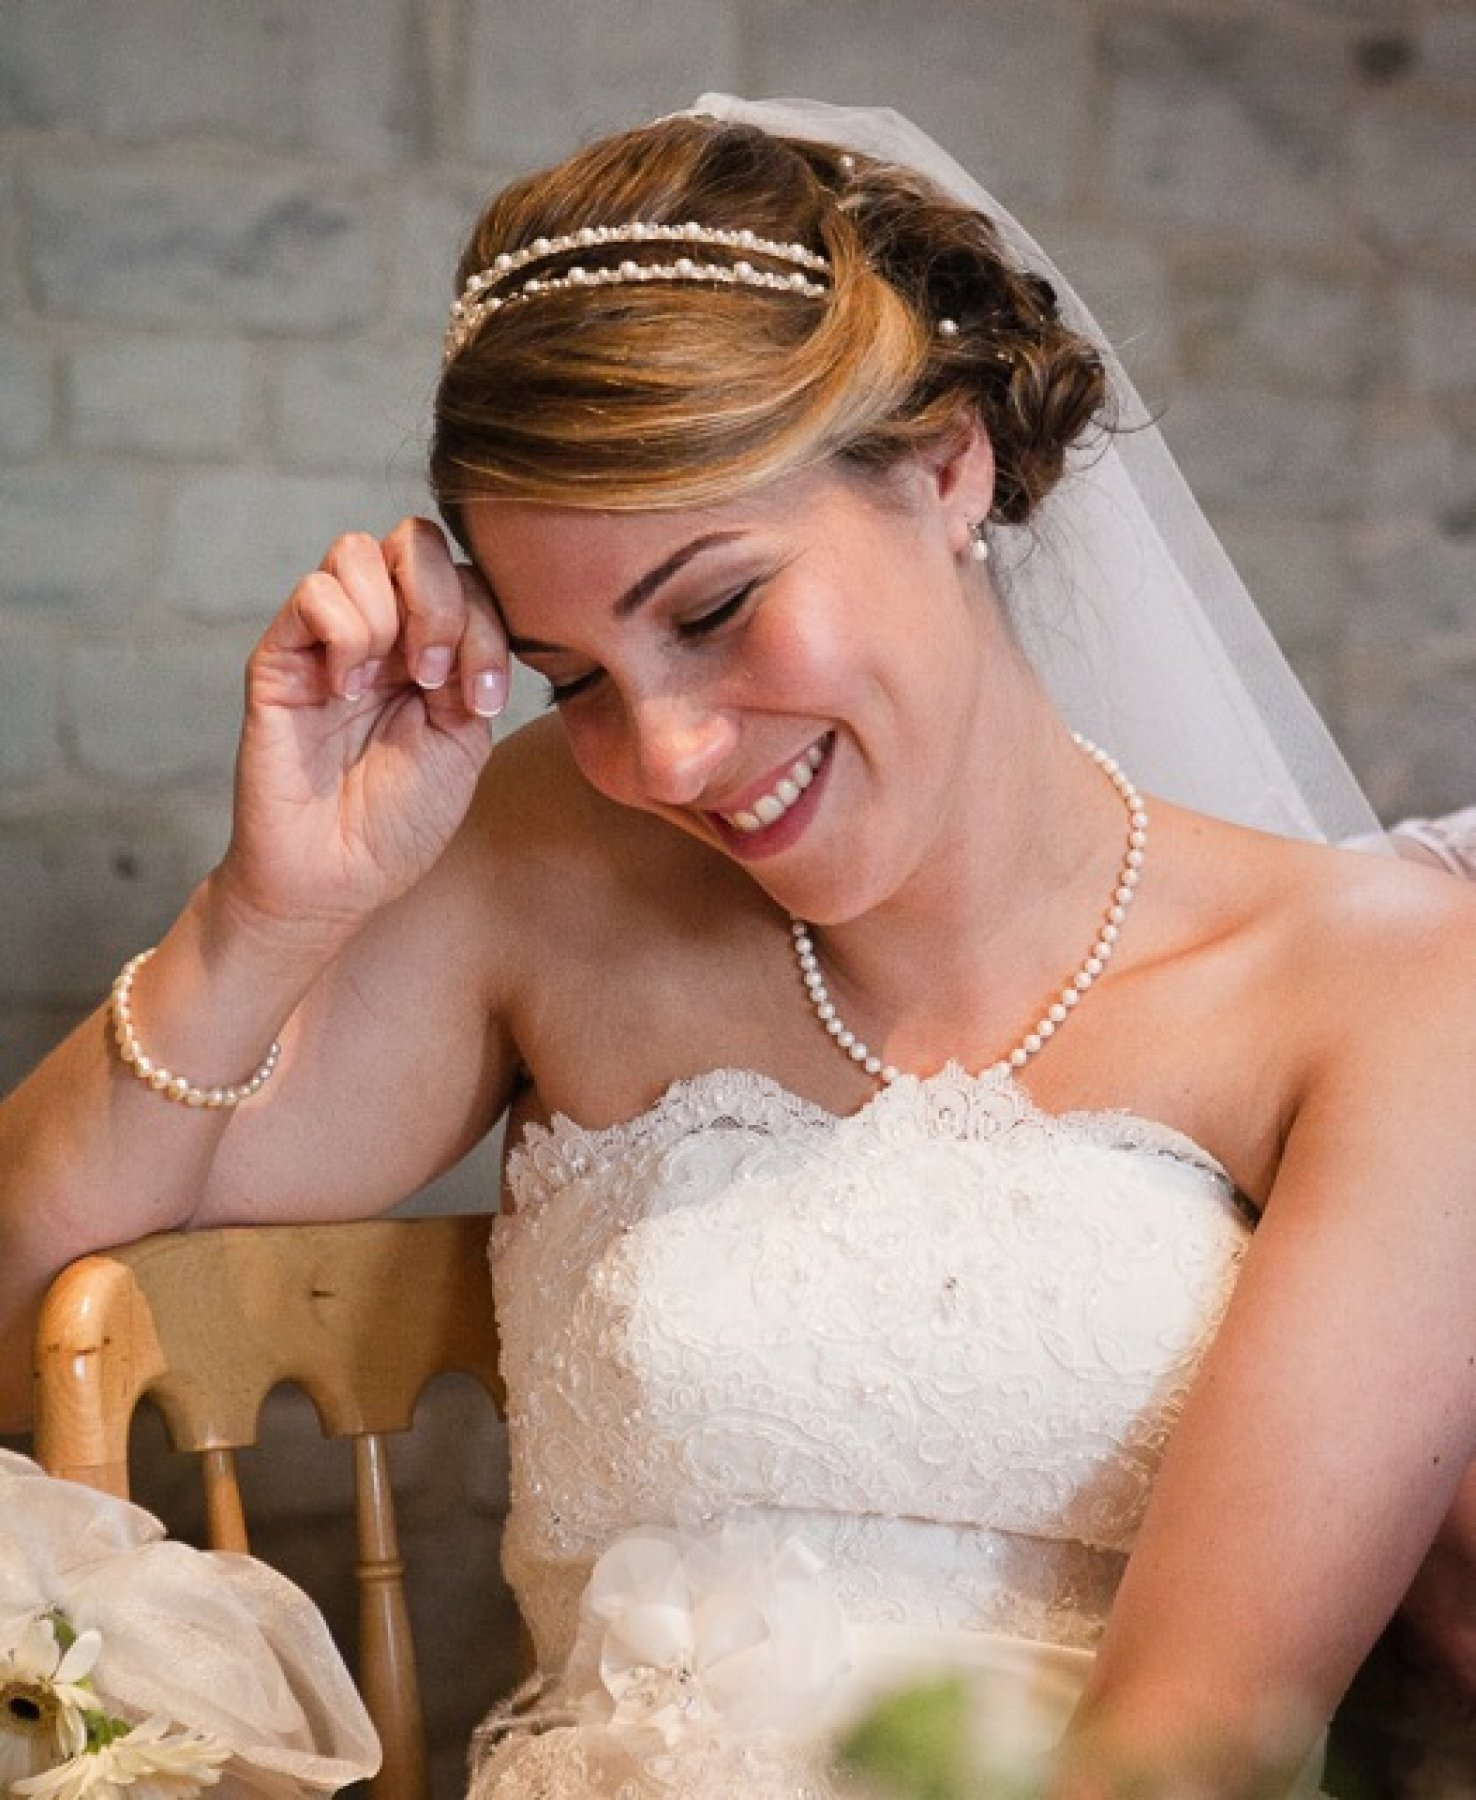 How to make bridal makeup last all day